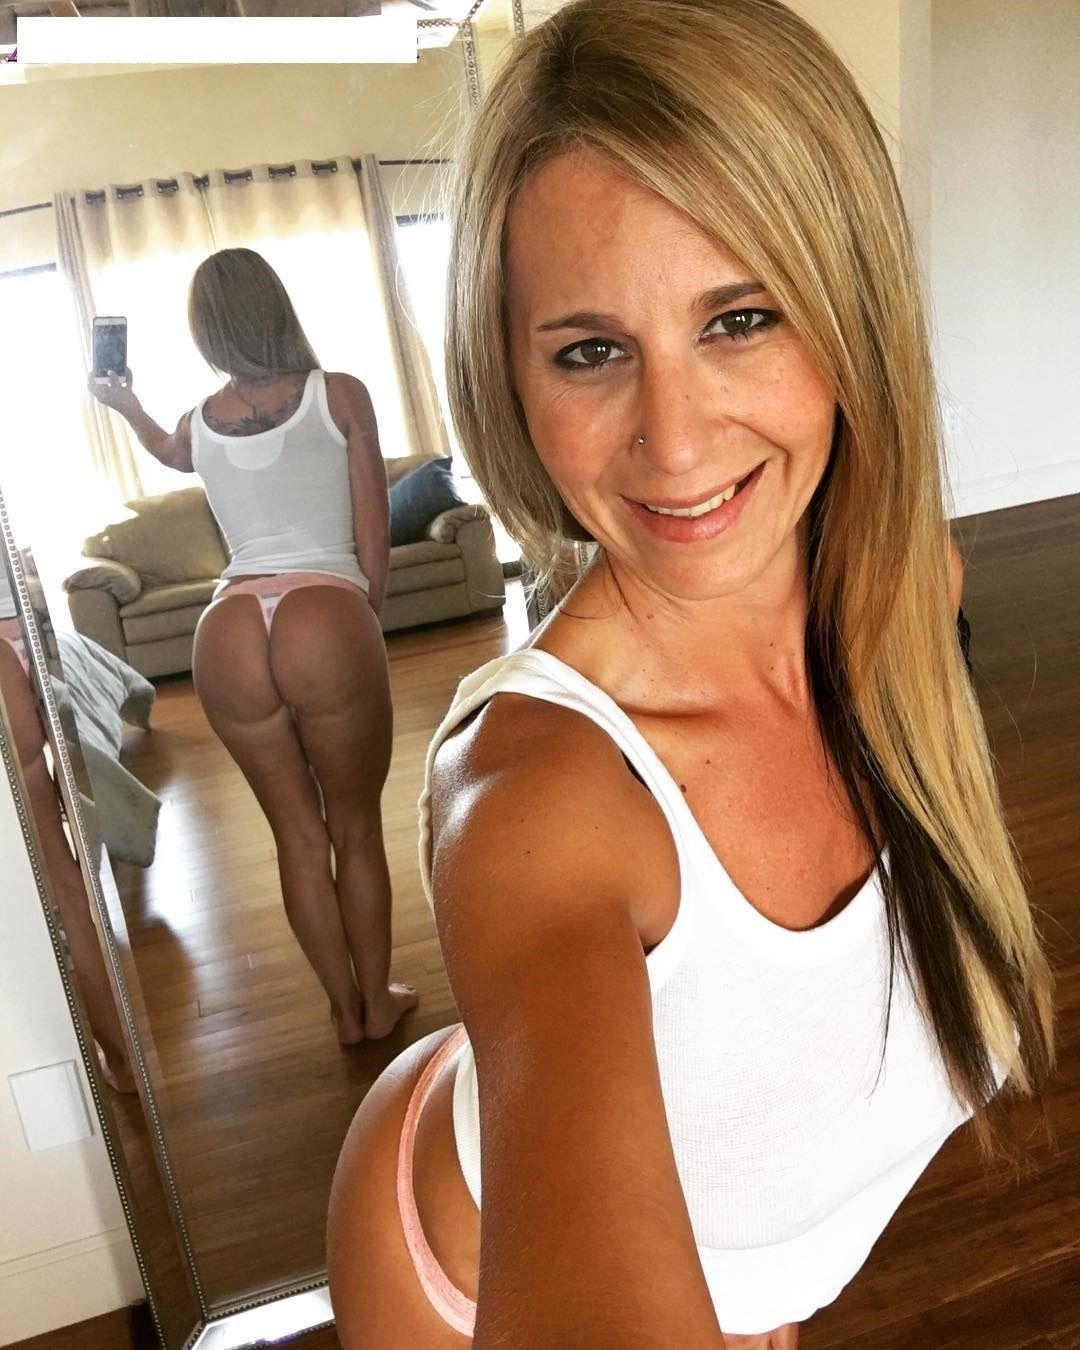 big booty momma! hot mother older women old womens dating nasty